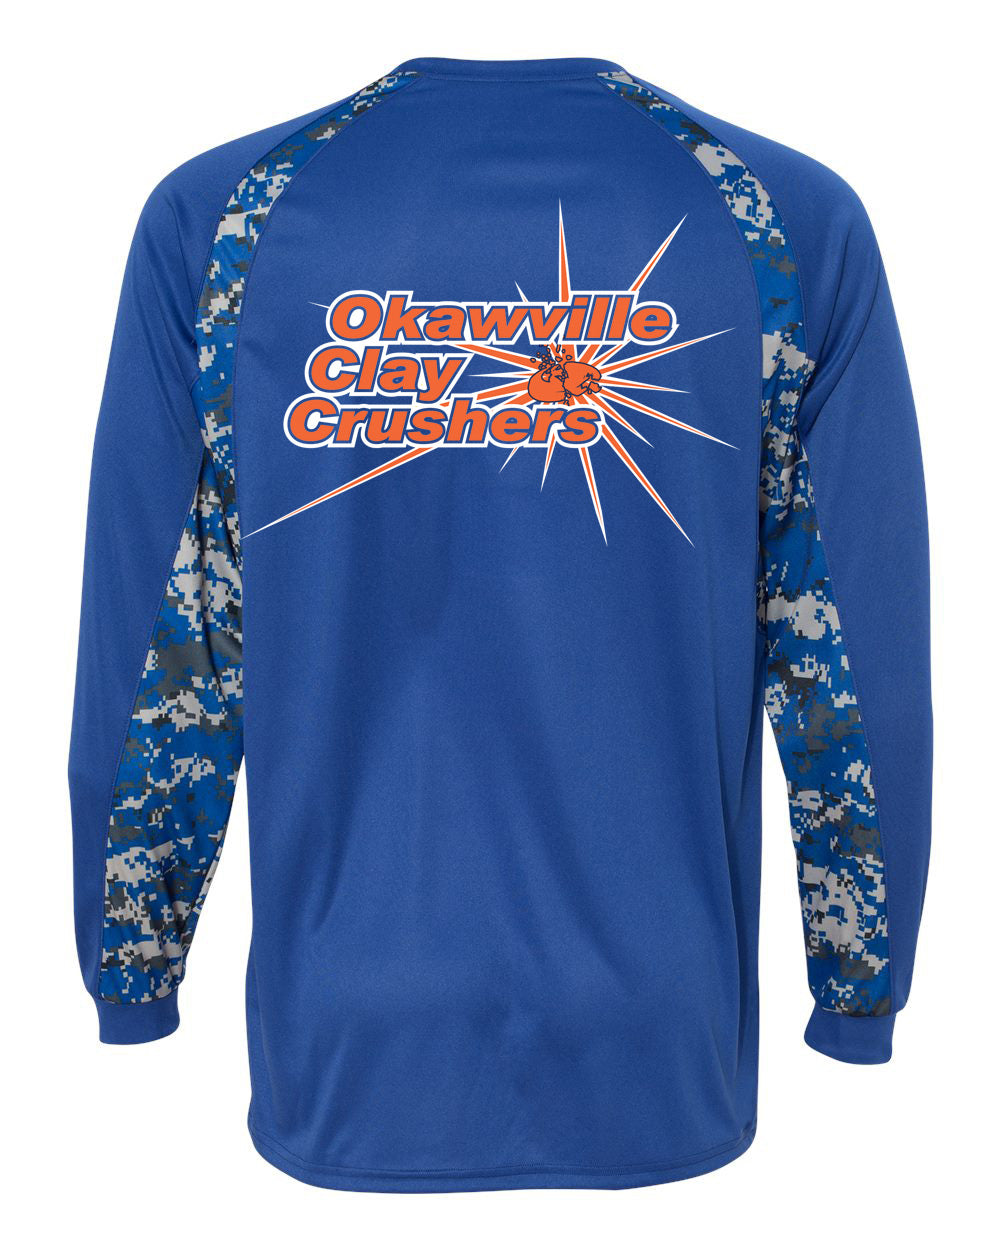 Okaville Clay Crushers Digital Camo Hook Long Sleeve T-Shirt